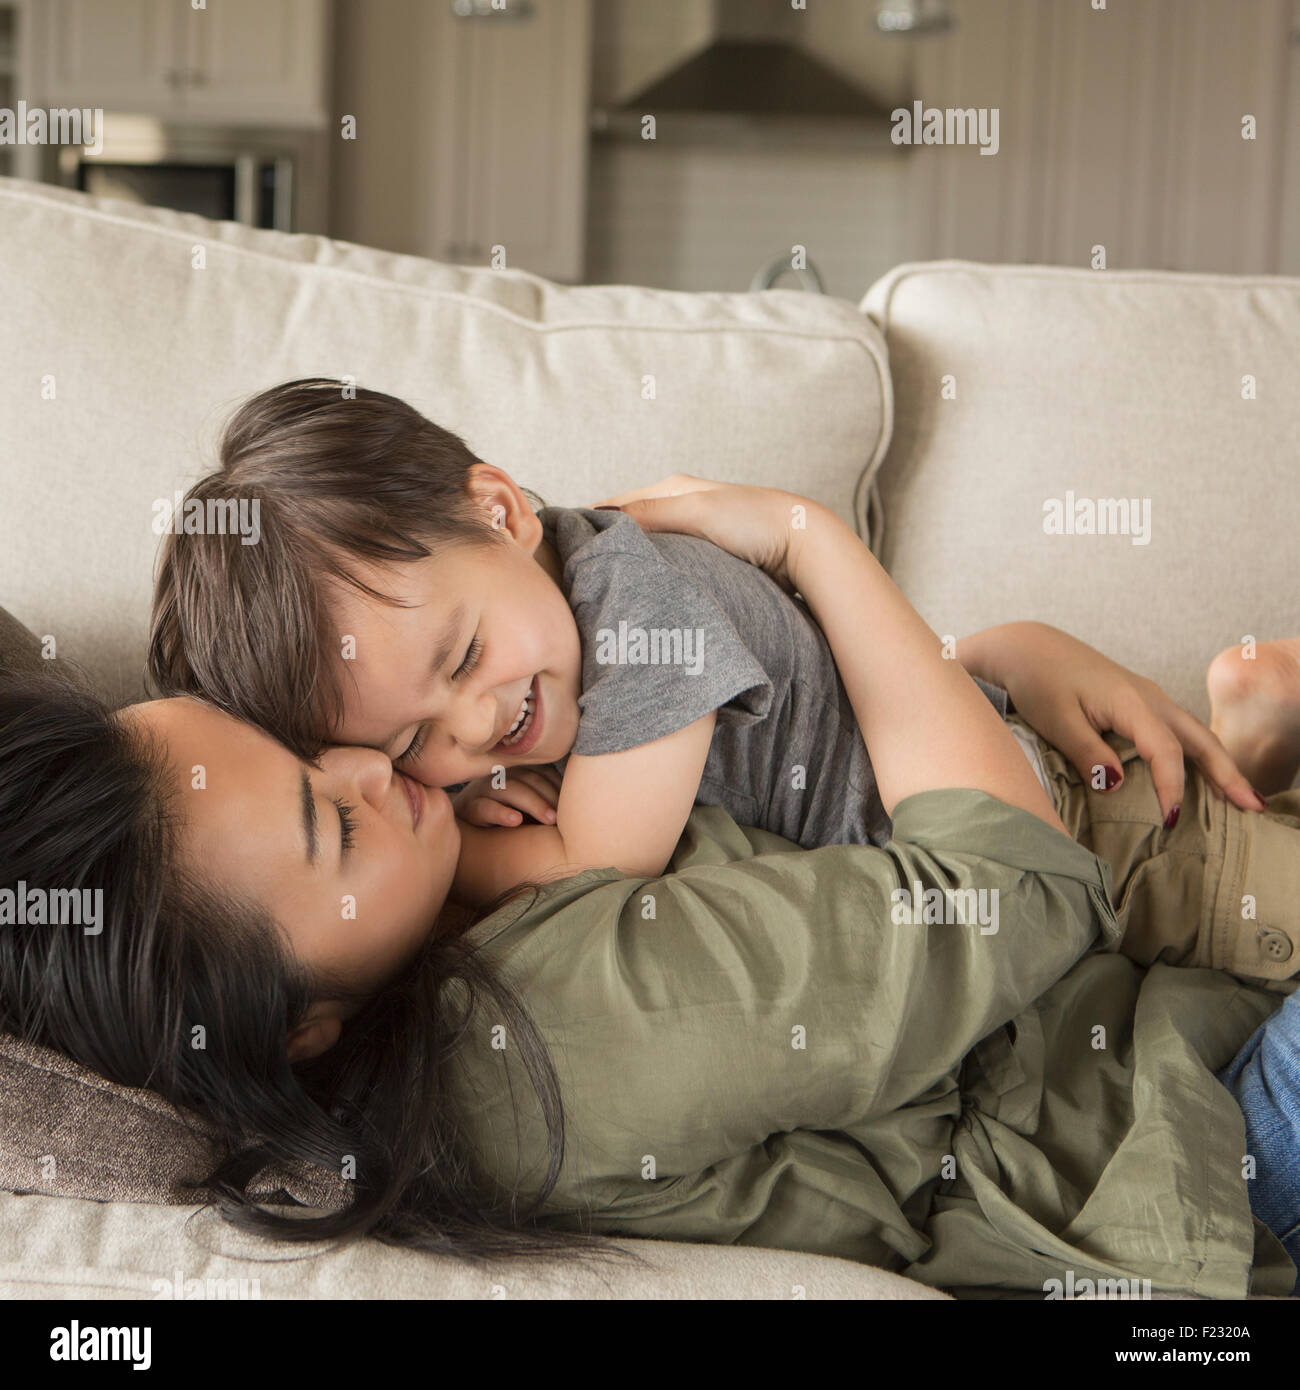 A woman lying on a sofa, smiling, cuddling her young son. Stock Photo